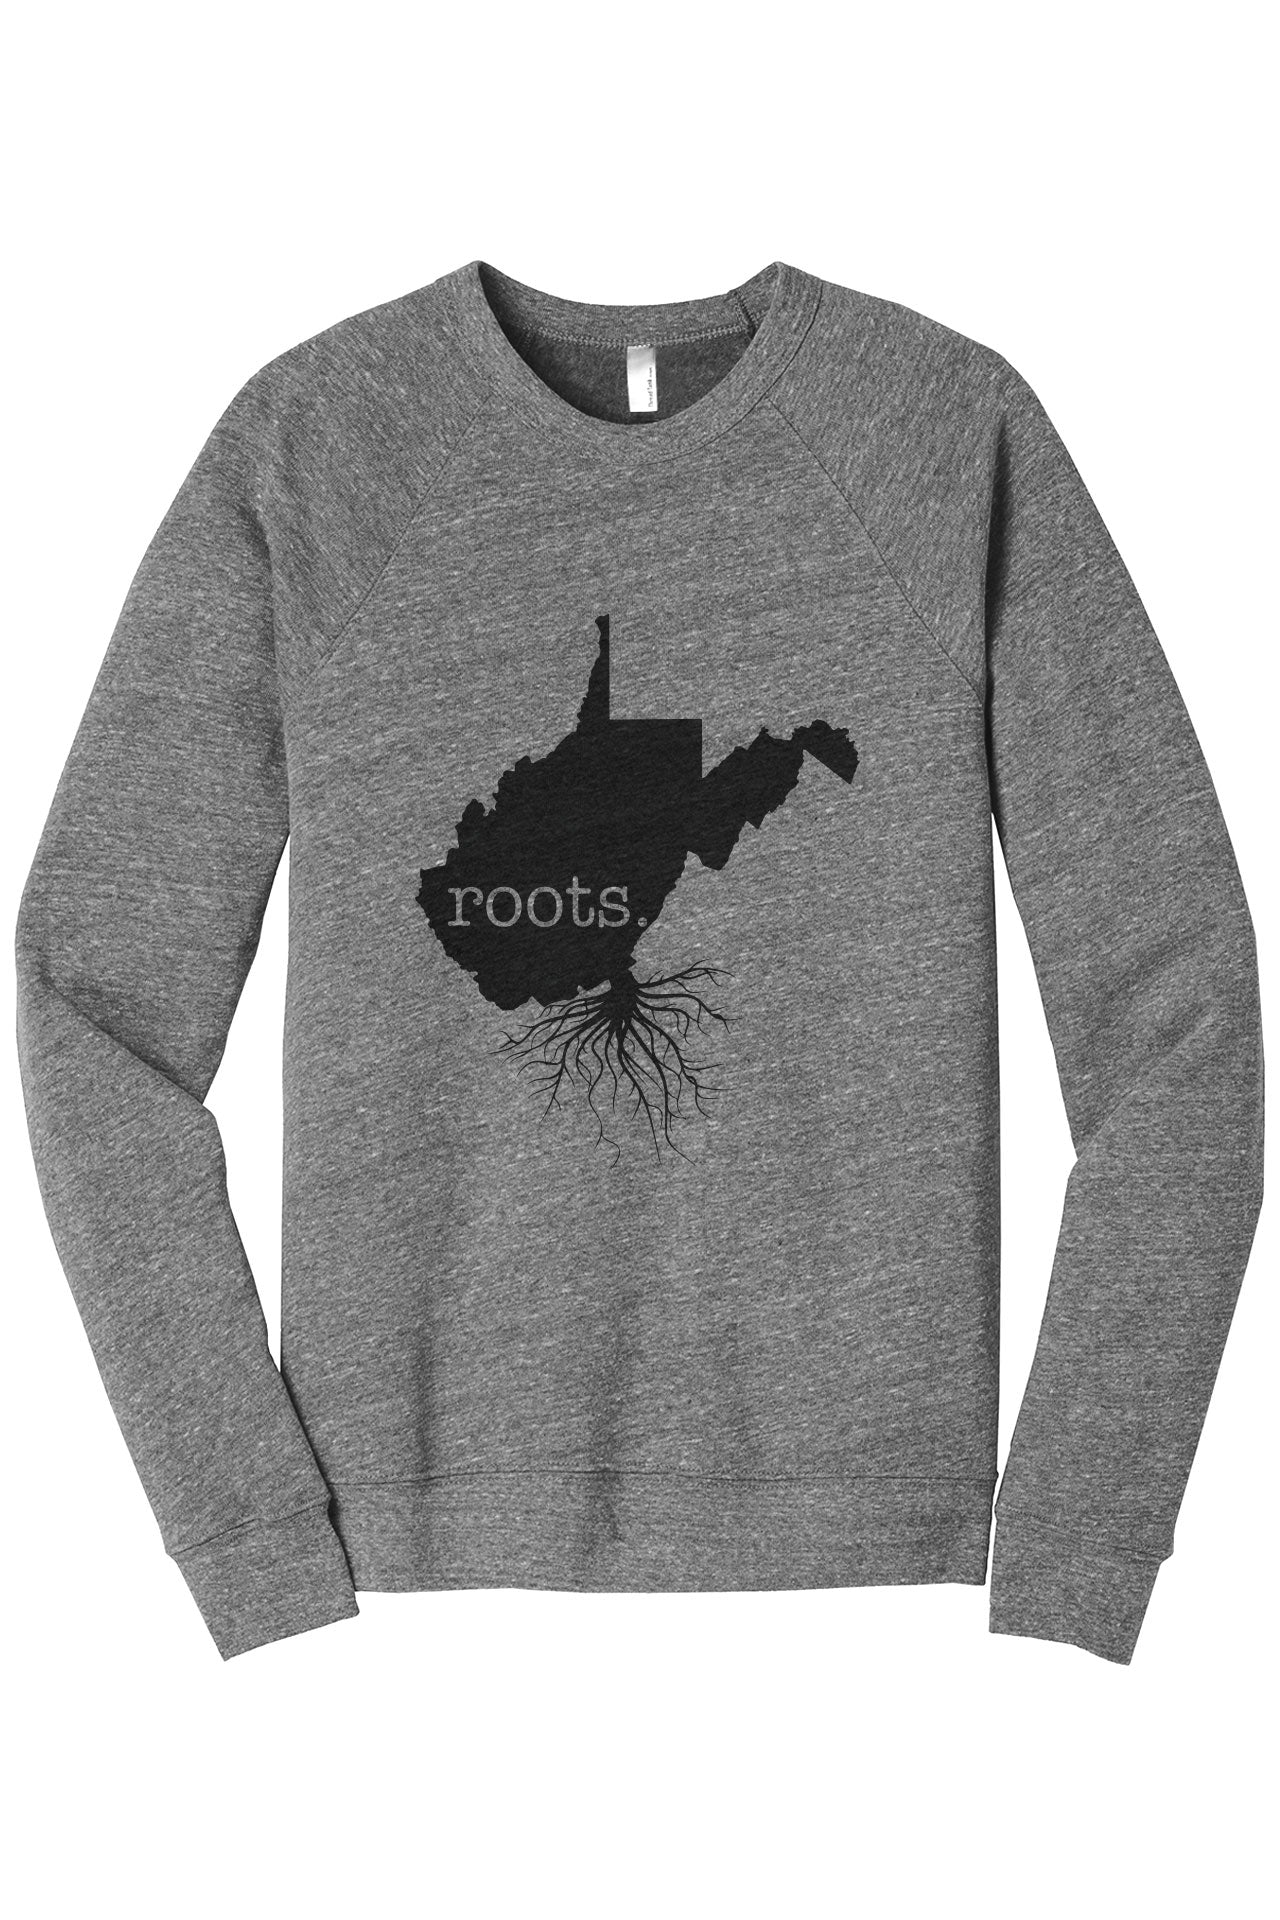 Home Roots State West Virginia WV Cozy Unisex Fleece Longsleeves Sweater Heather Grey FRONT